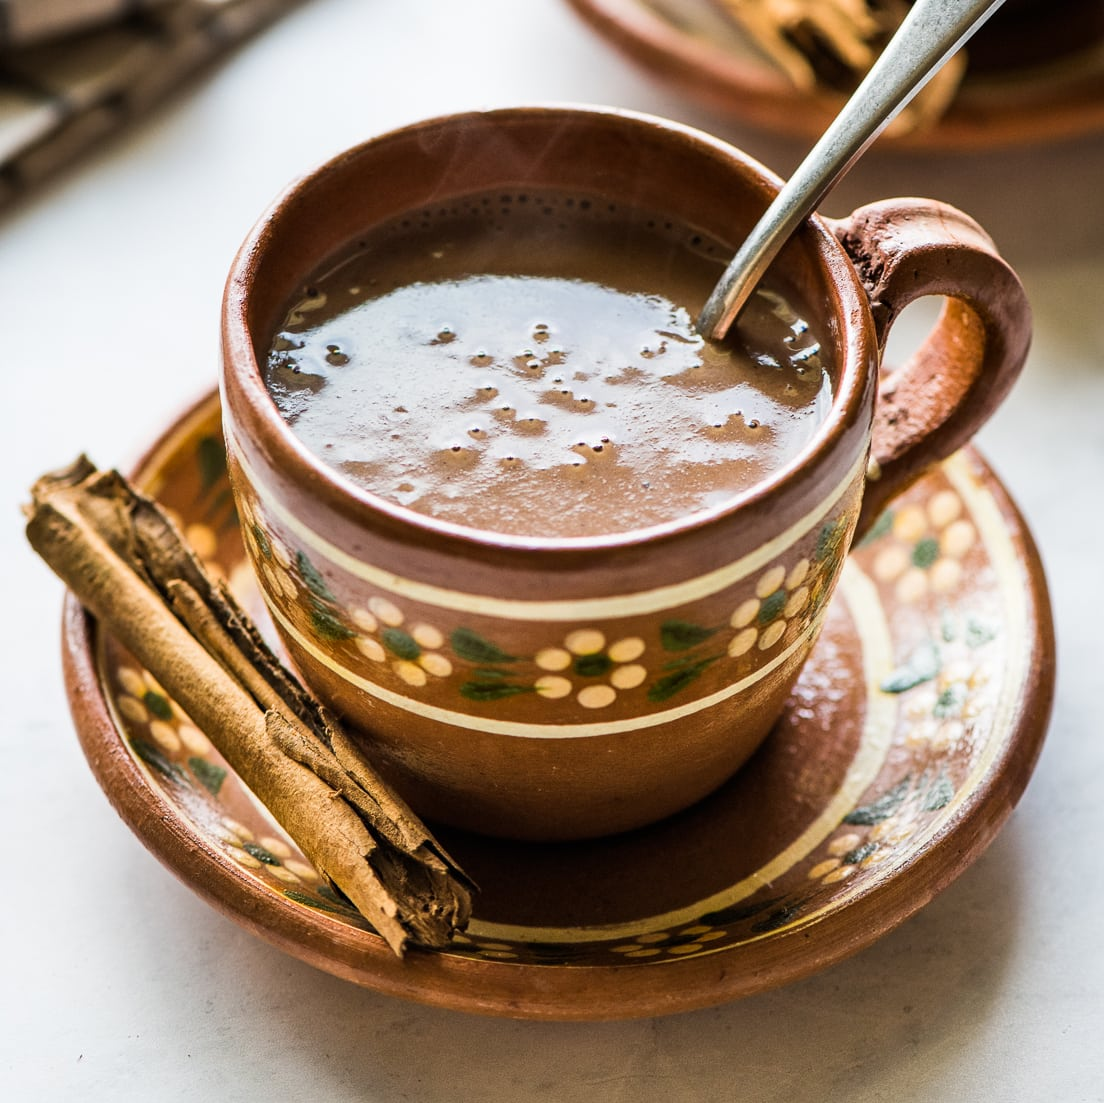 Champurrado - Looking to spice up your holiday menu? These 12 Mexican Christmas food recipes are perfect for celebrating Las Posadas, Noche Buena and Navidad!